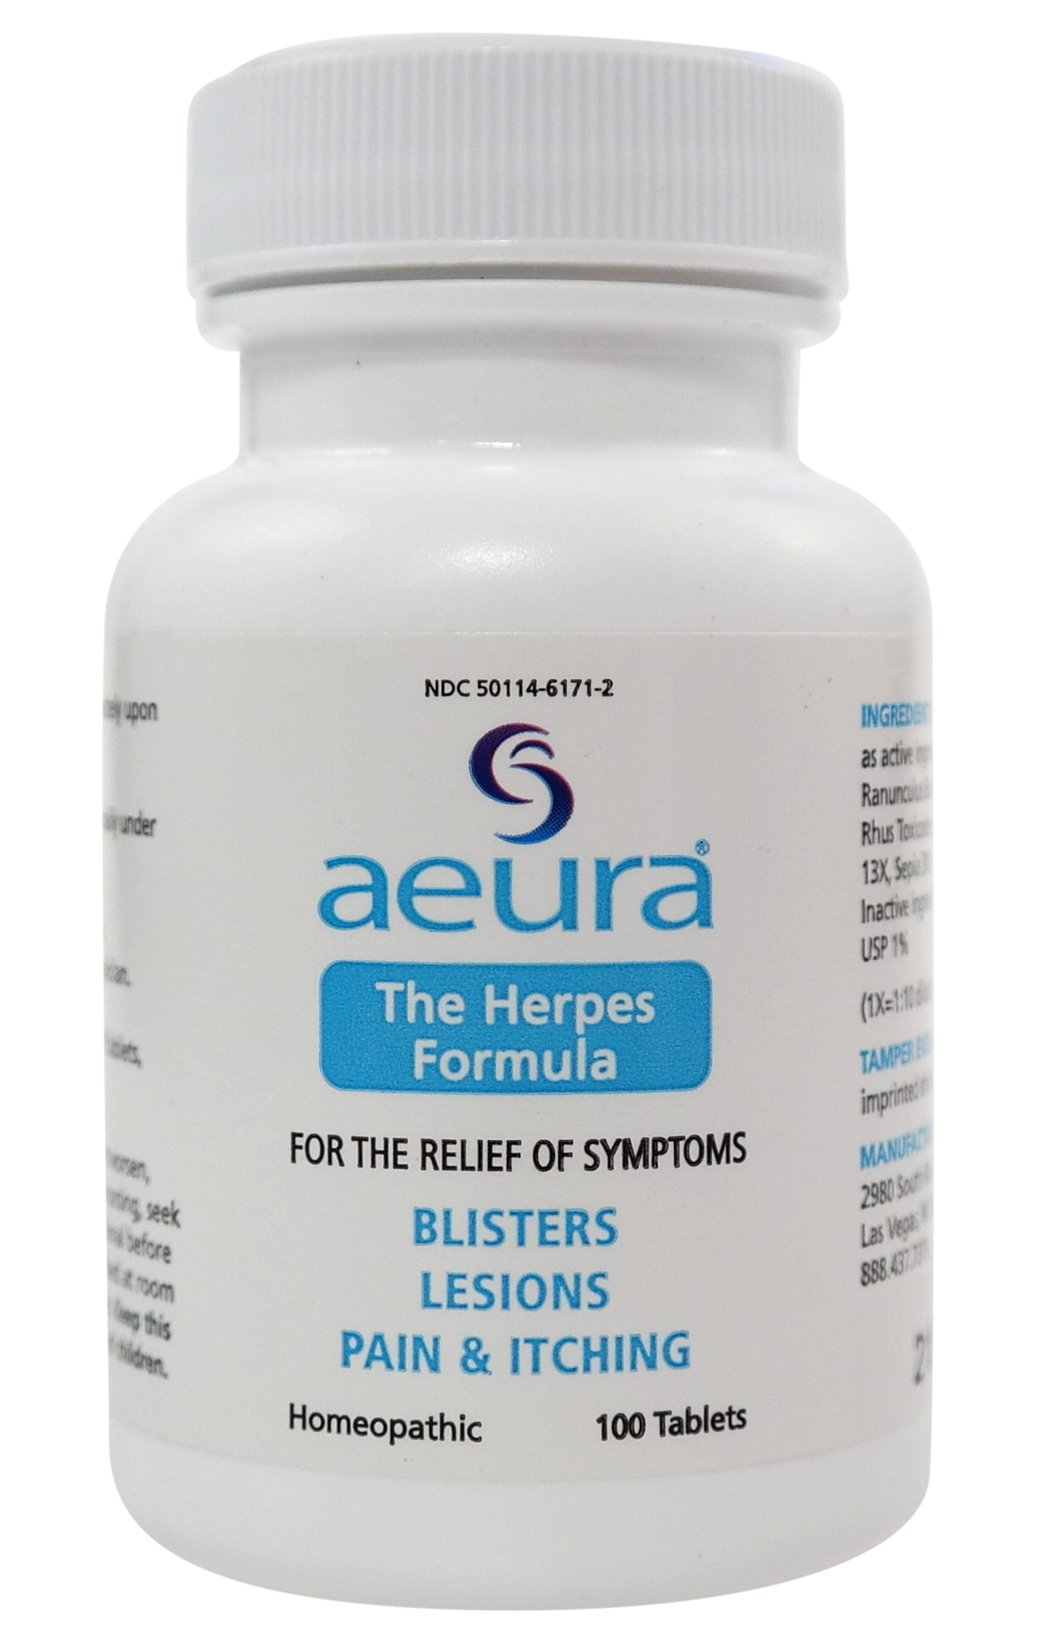 AEURA – THE HERPES FORMULA | FAST Relief and Prevention of Herpes Outbreaks | 100% Guaranteed Safe & Effective, ALL-NATURAL Tablets for HSV1 & HSV2 Outbreaks & Prevention | SAFE & EFFECTIVE